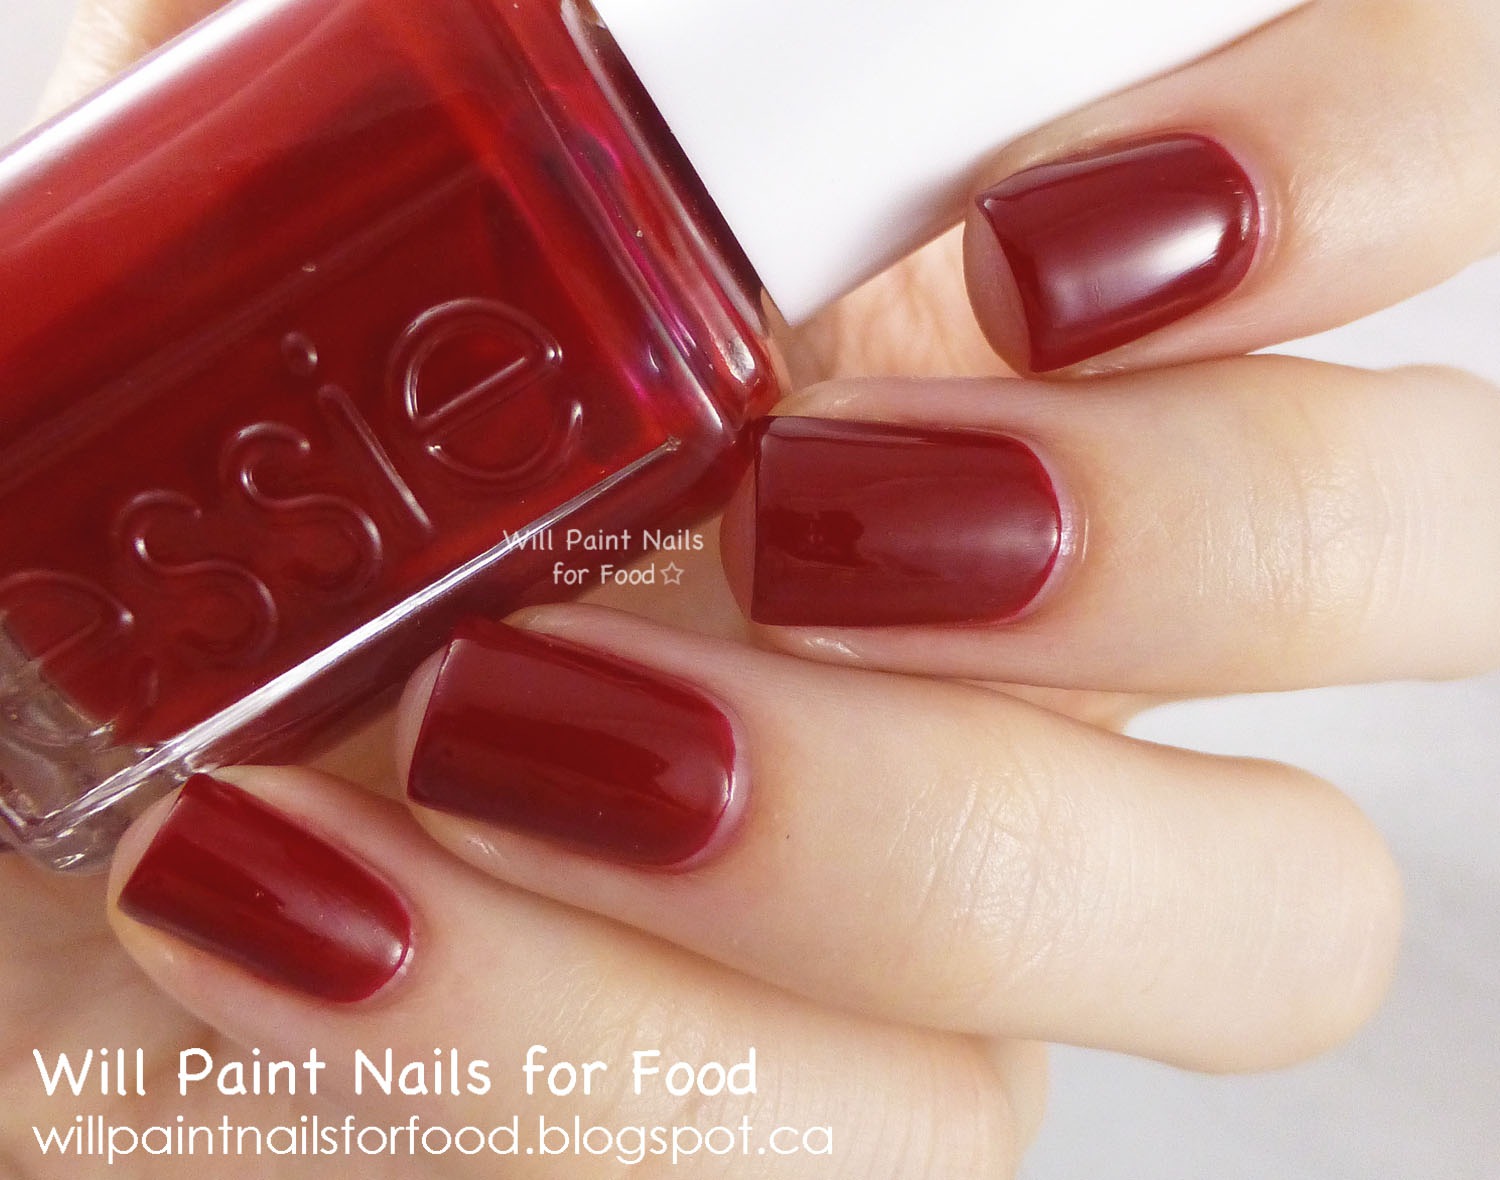 Essie For the Twill of It Fall 2013 Nail Polishes Essie For the Twill of It Fall 2013 Nail Polishes new images